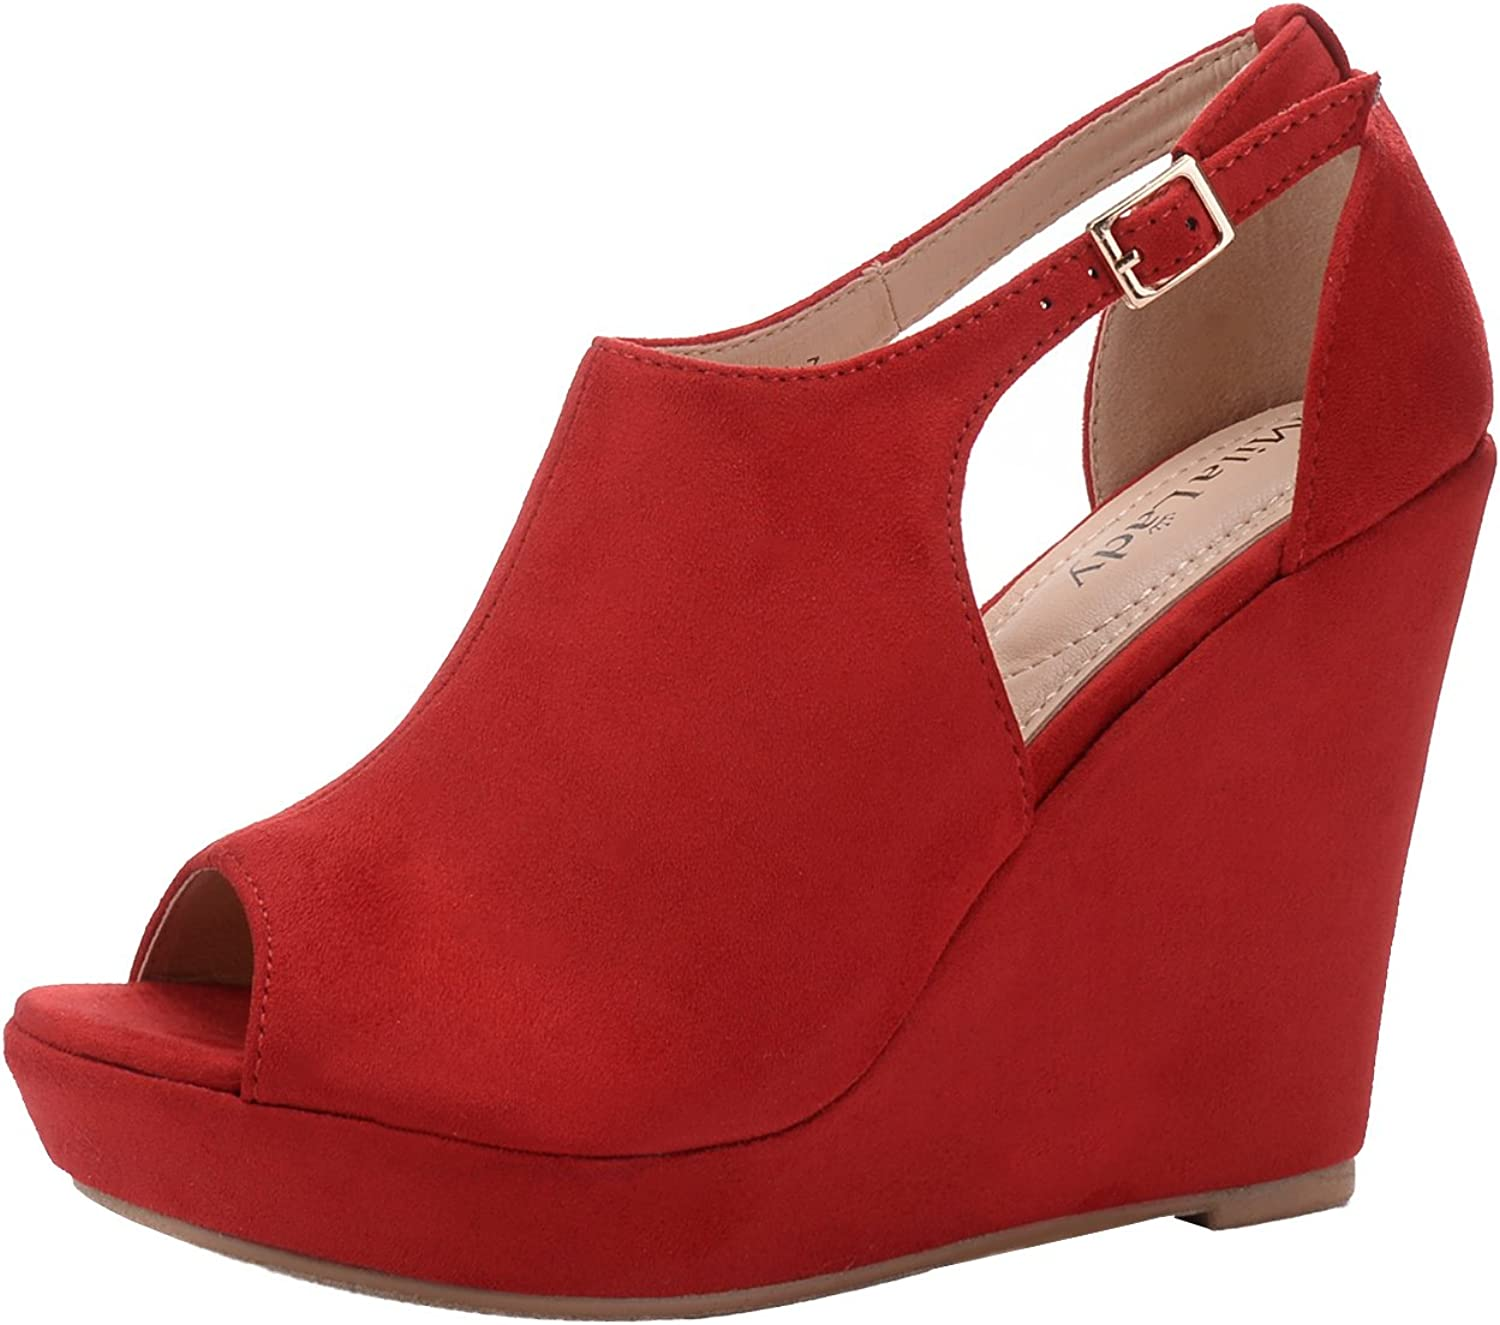 Mila Lady( Lisa 2 Women's Platform Wedges Cutout Side Straps,Peep-Toe Ankle Bootie. RED6.5